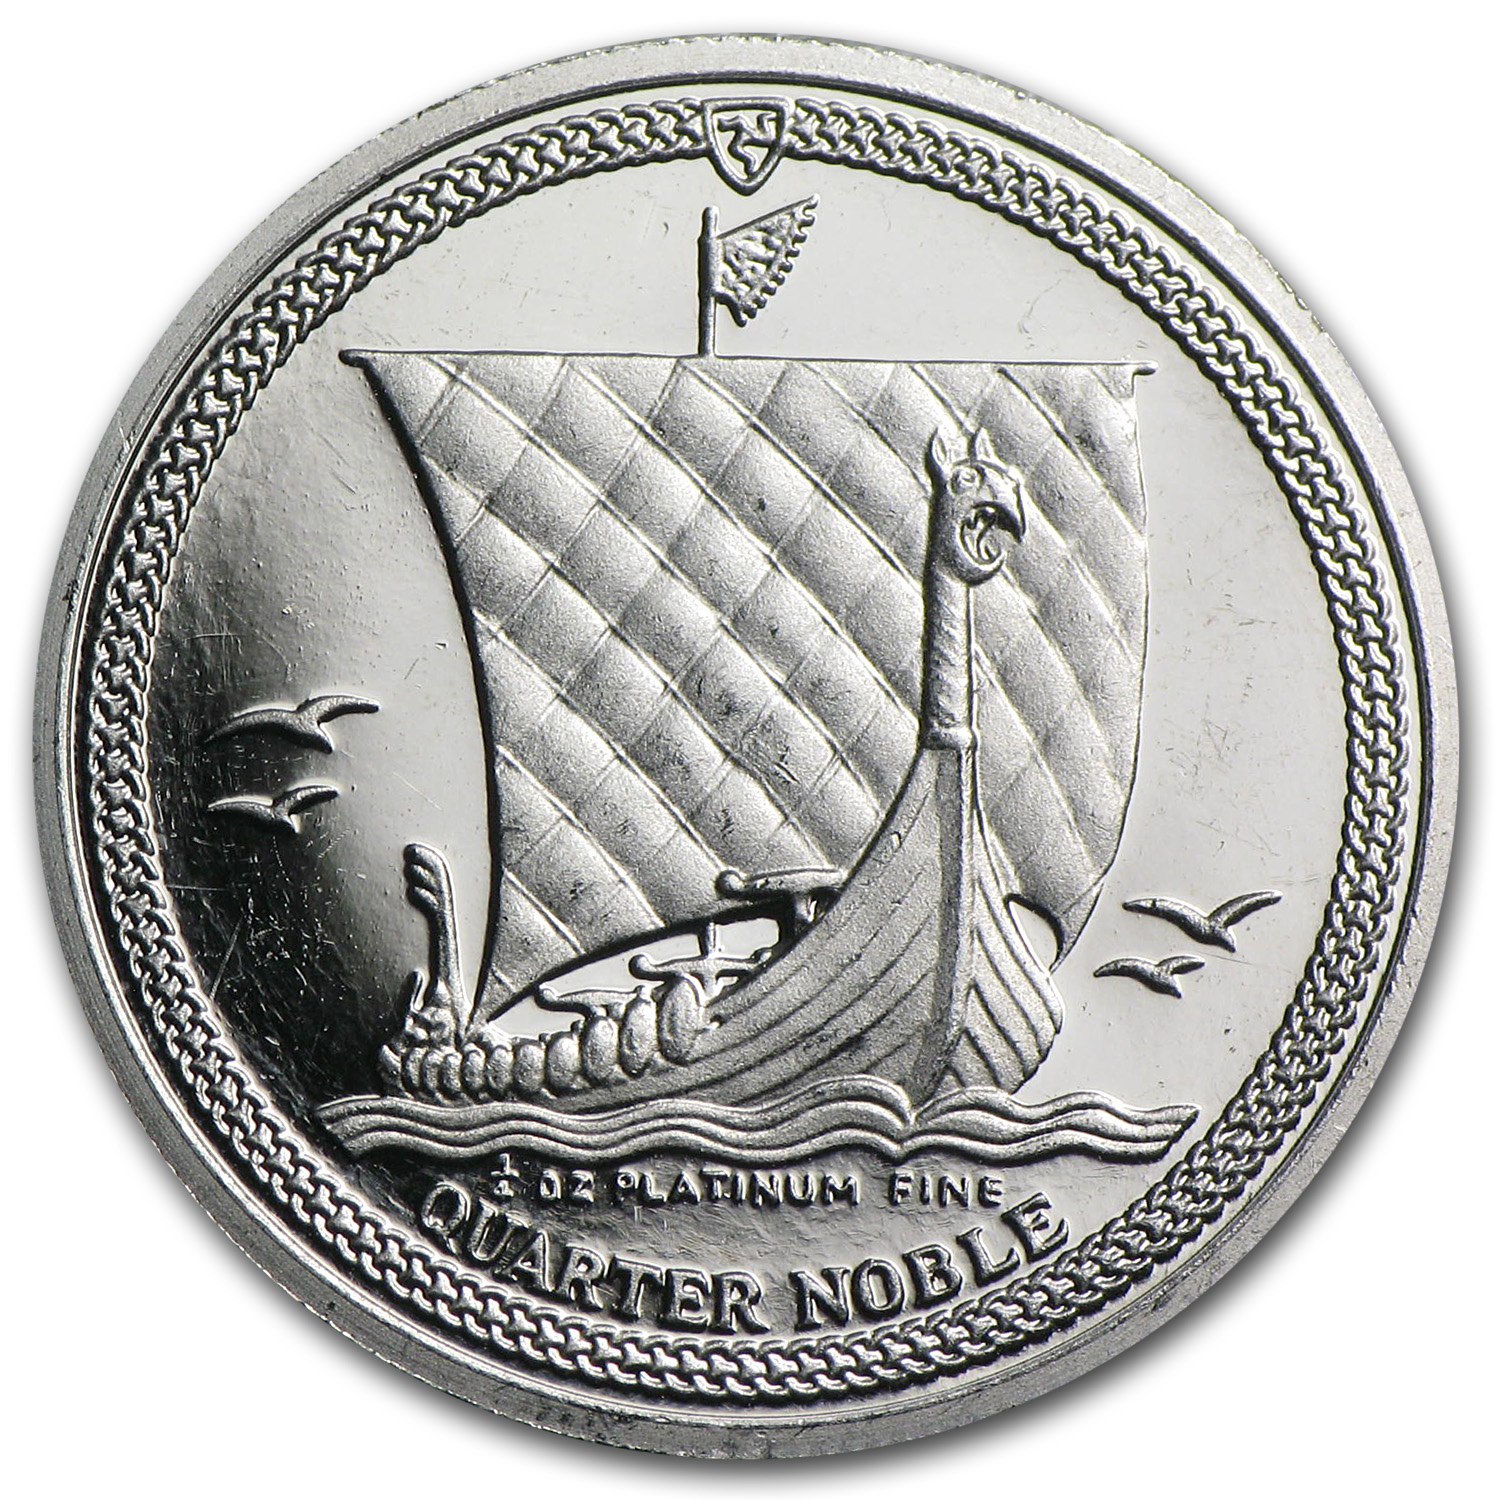 Isle of Man 1/4 oz Platinum Noble Proof